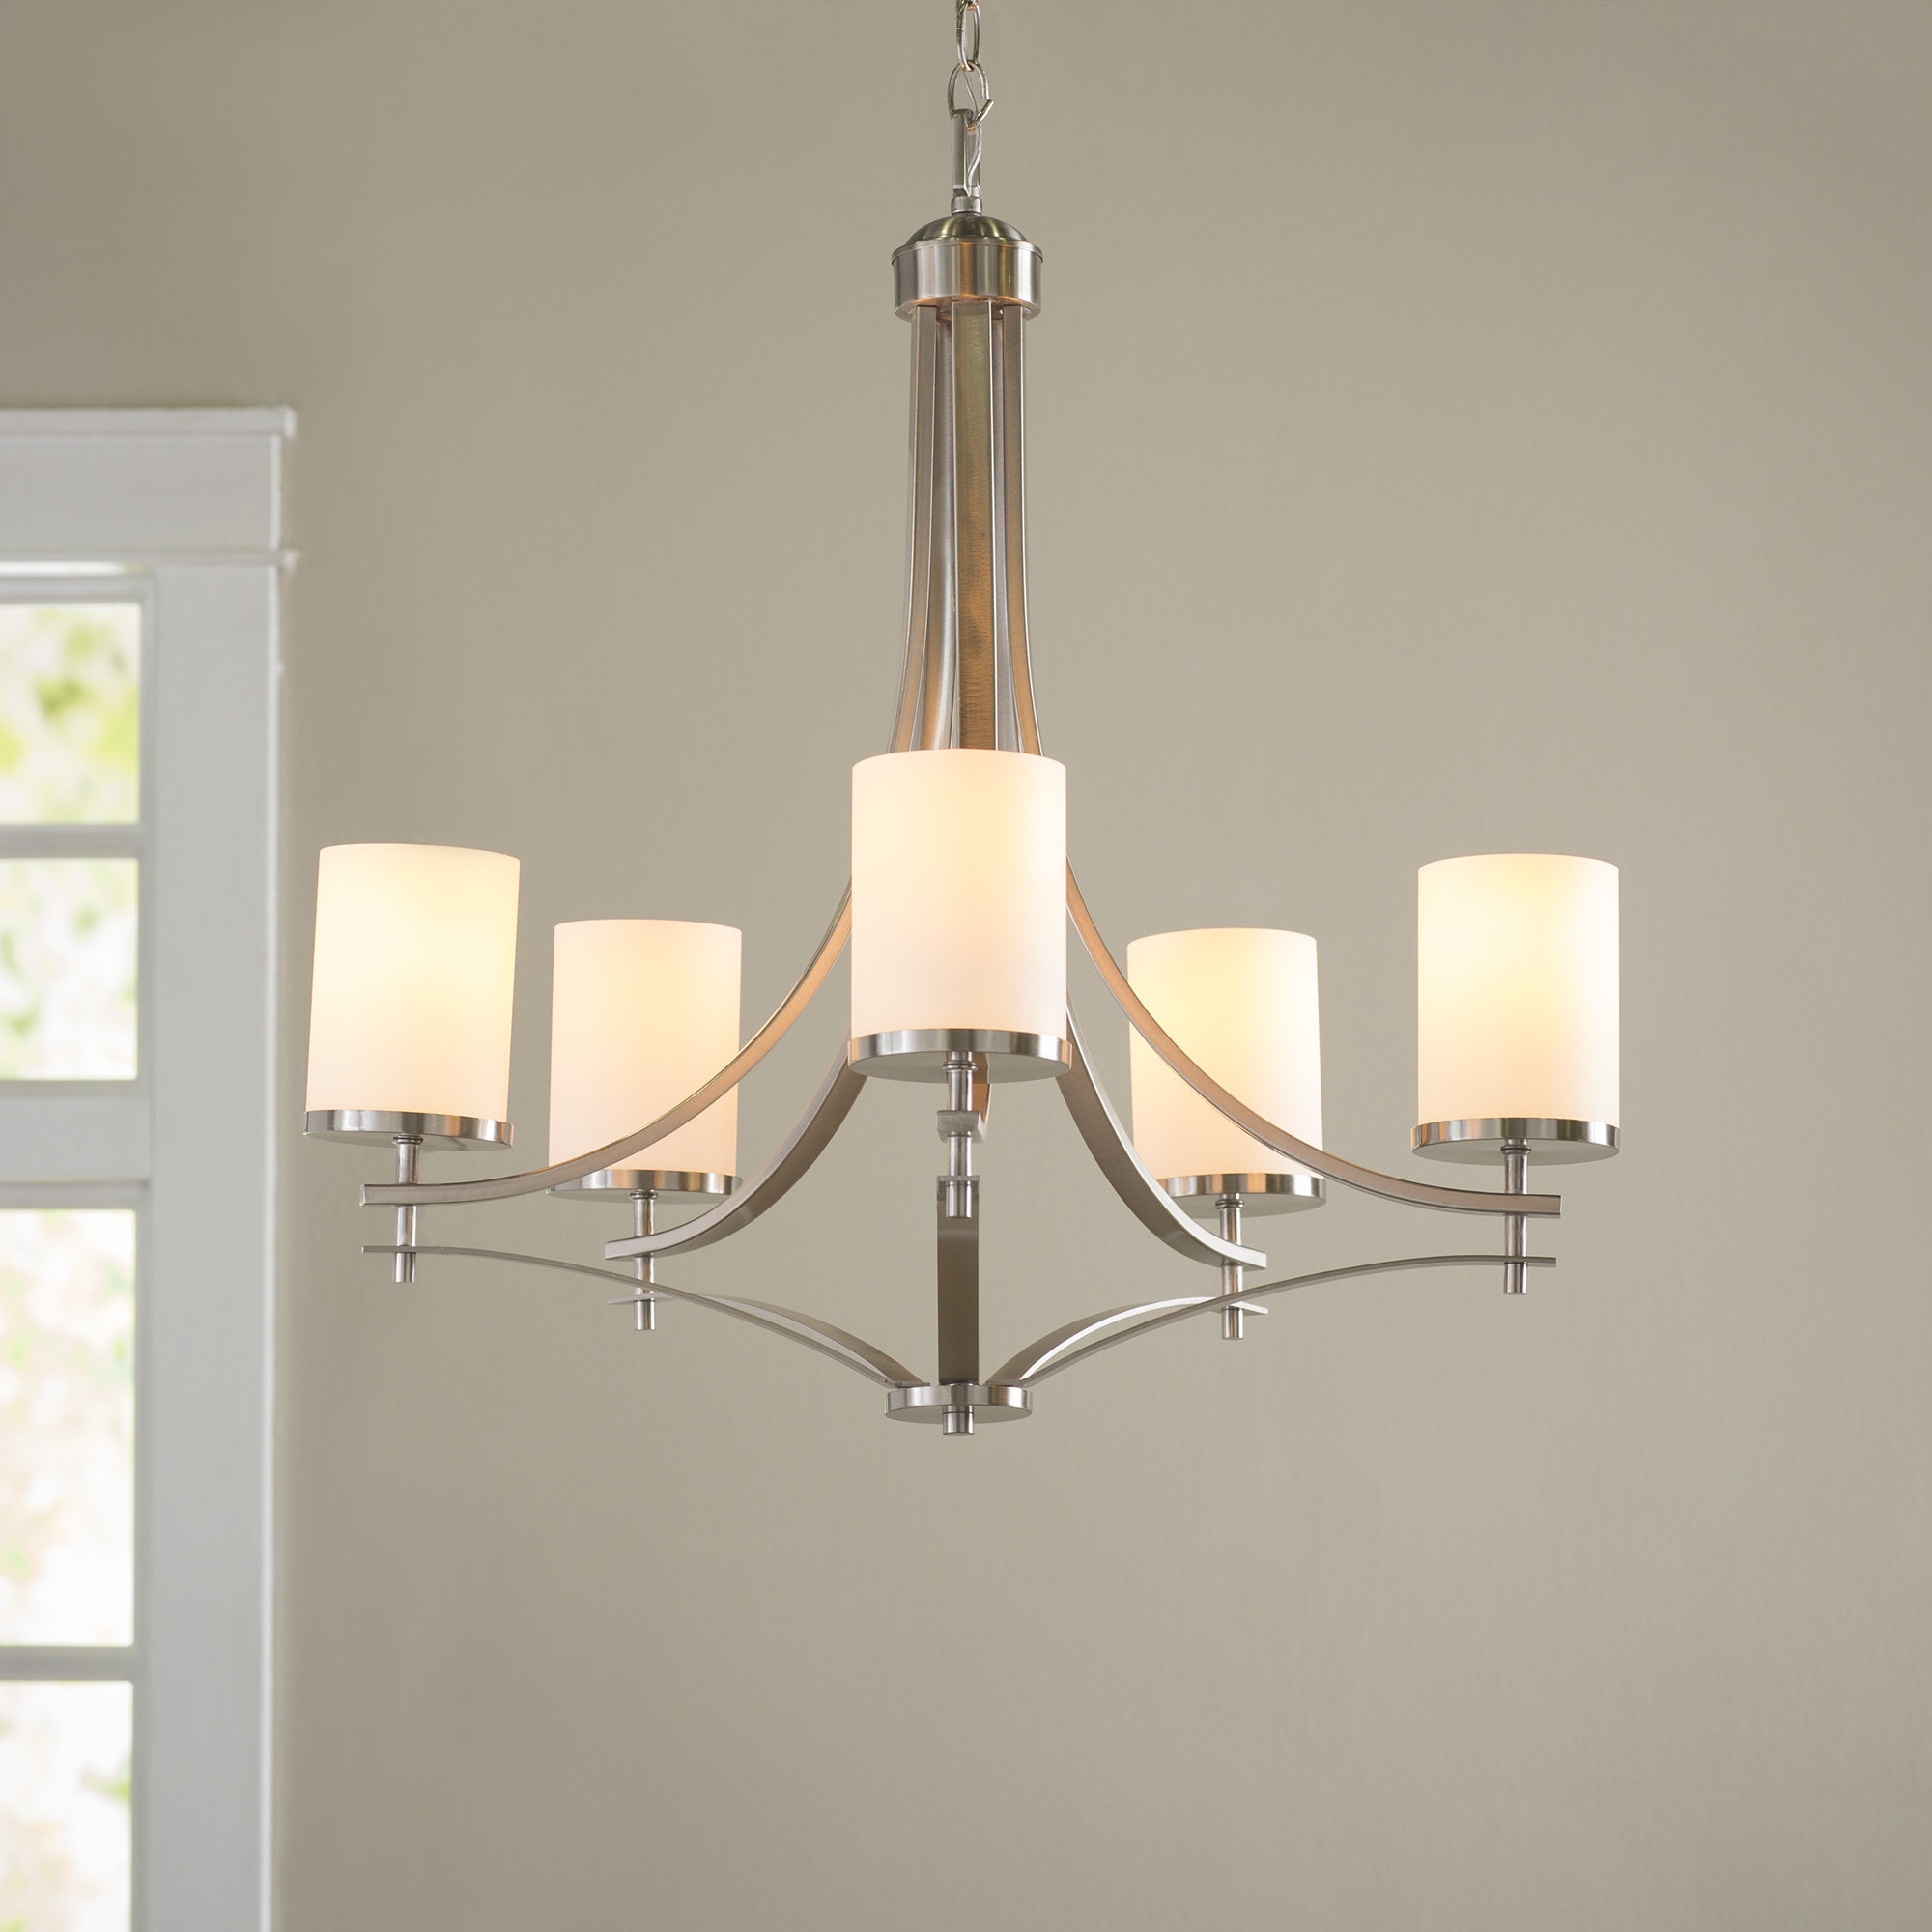 Widely Used Agnes 5 Light Shaded Chandelier Regarding Suki 5 Light Shaded Chandeliers (View 7 of 25)